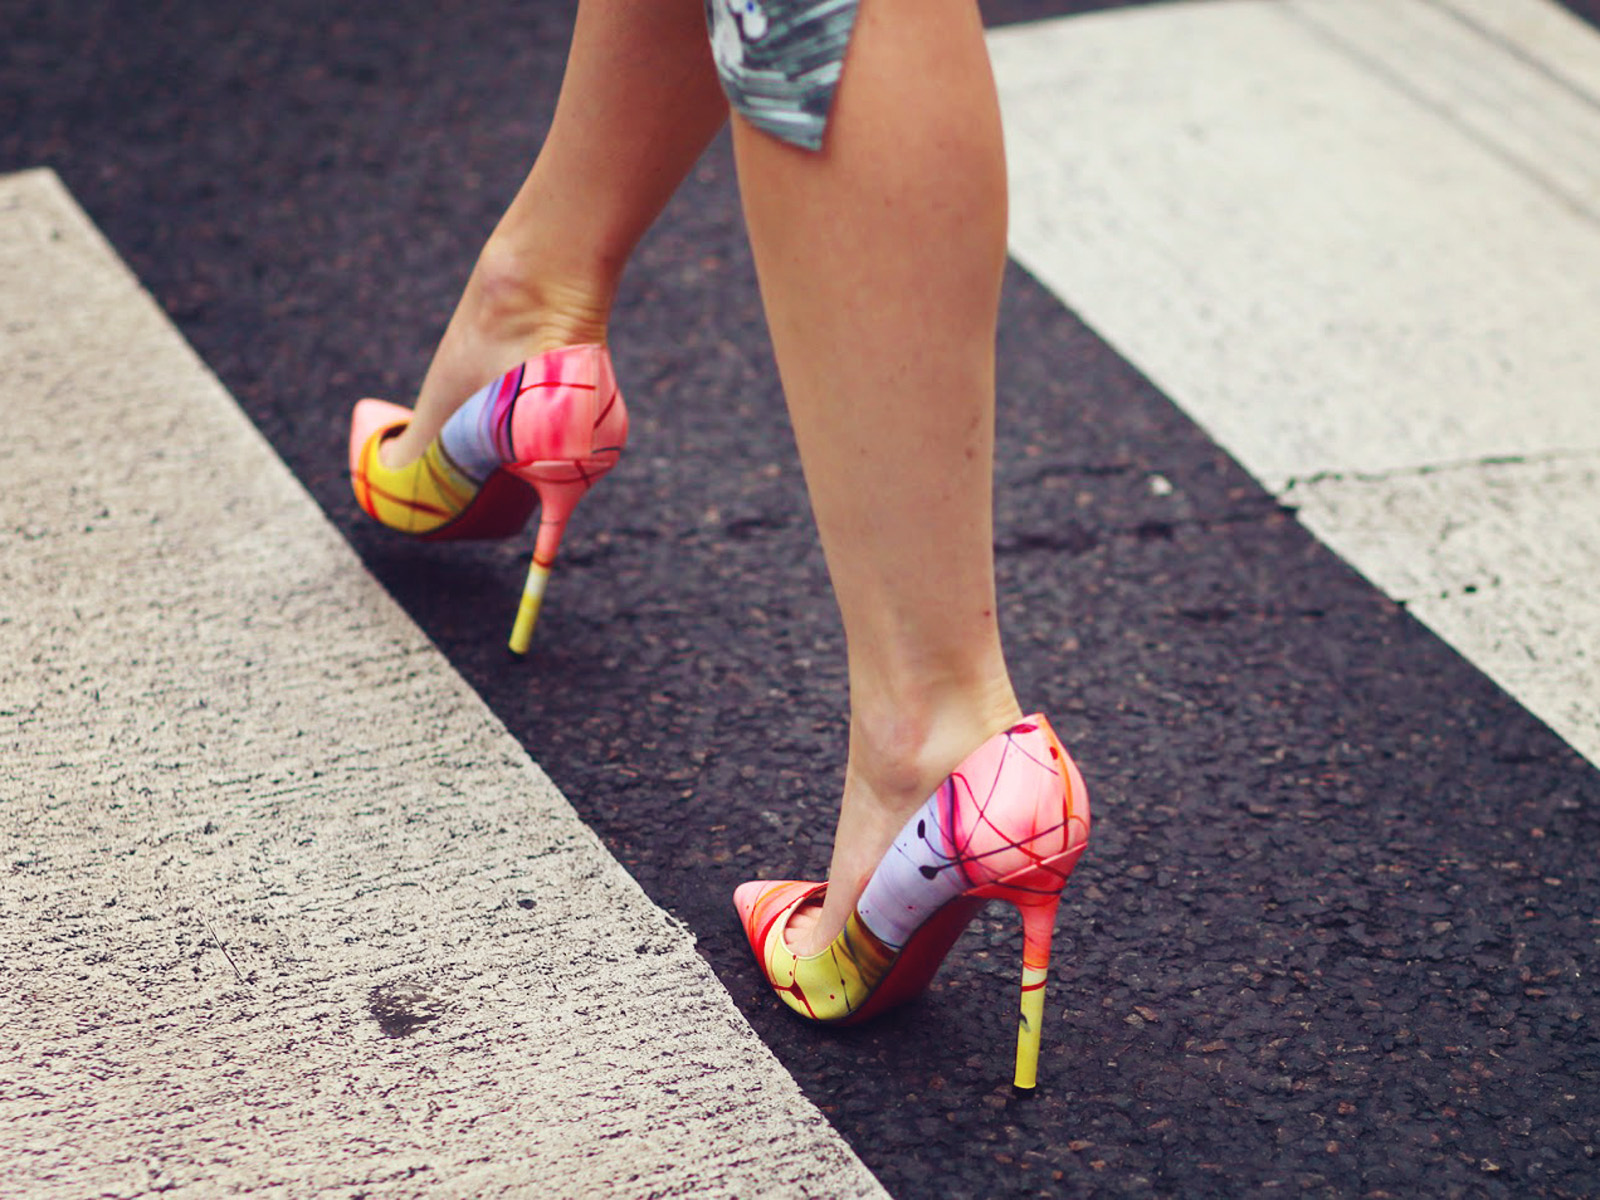 Pointed Shoes, Stilettos | Zapatos en punta, Stilettos